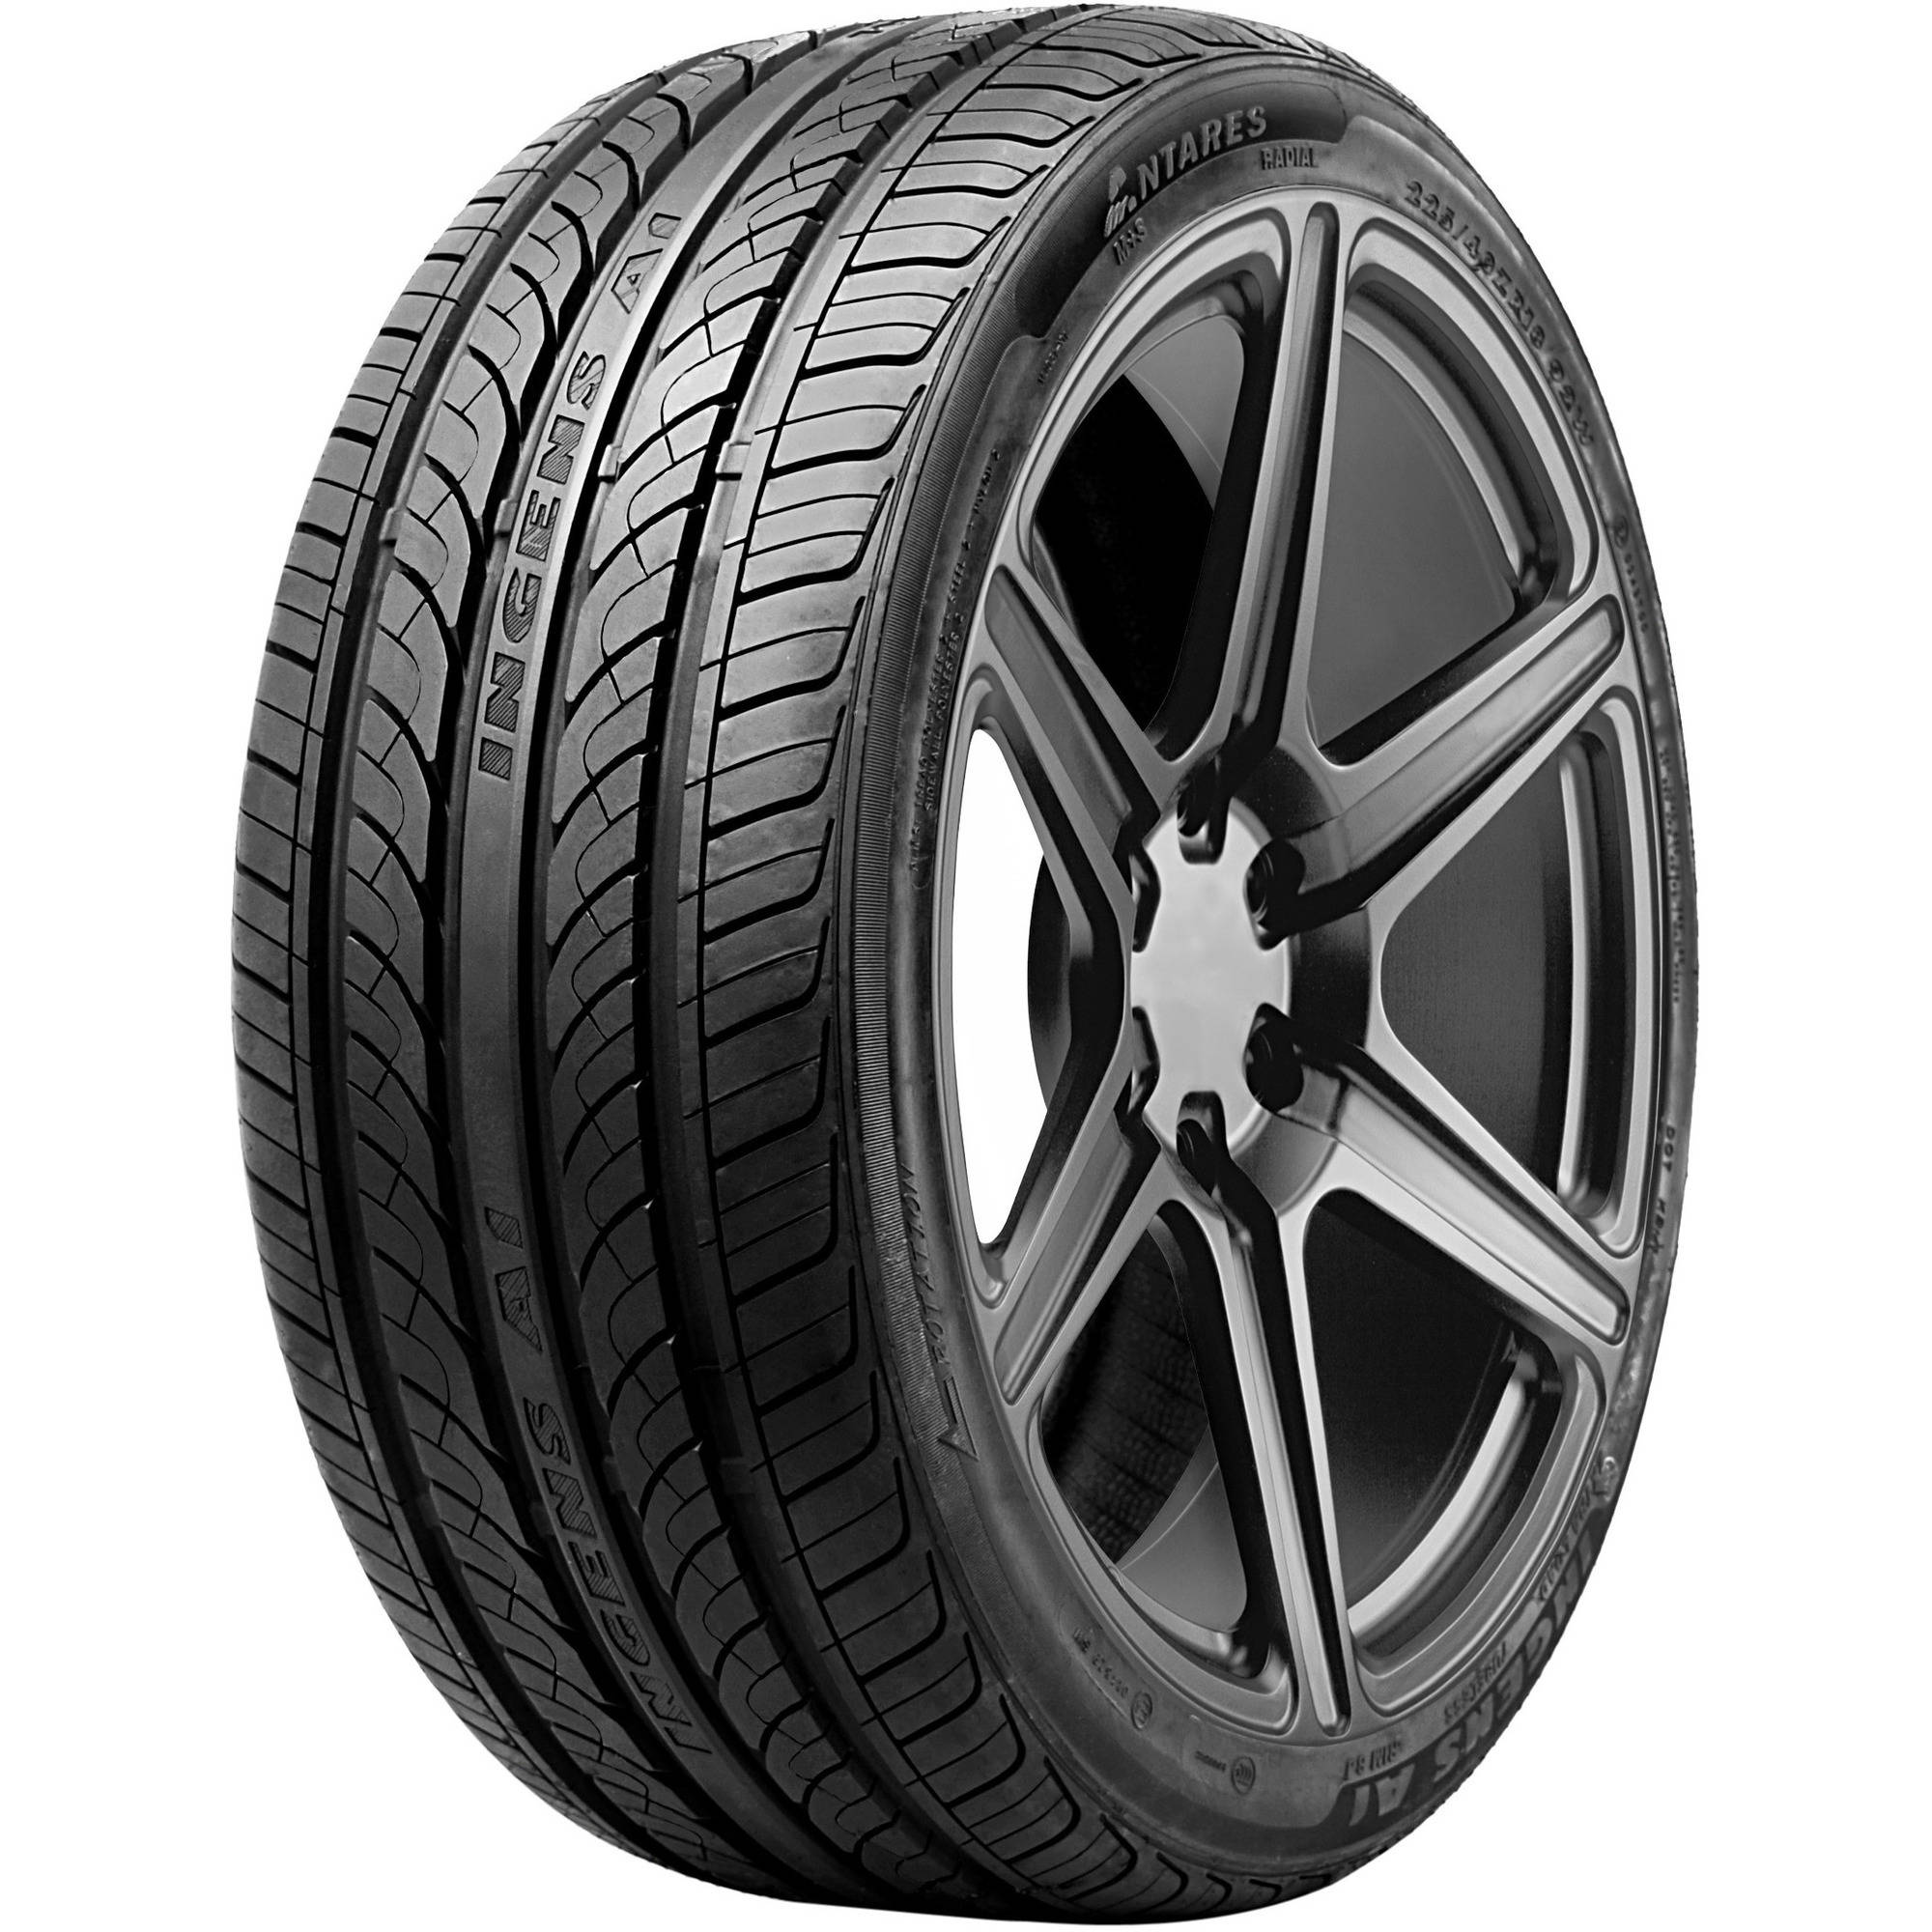 Antares Ingens A1 All-Season Tire - 225/60R17 99V